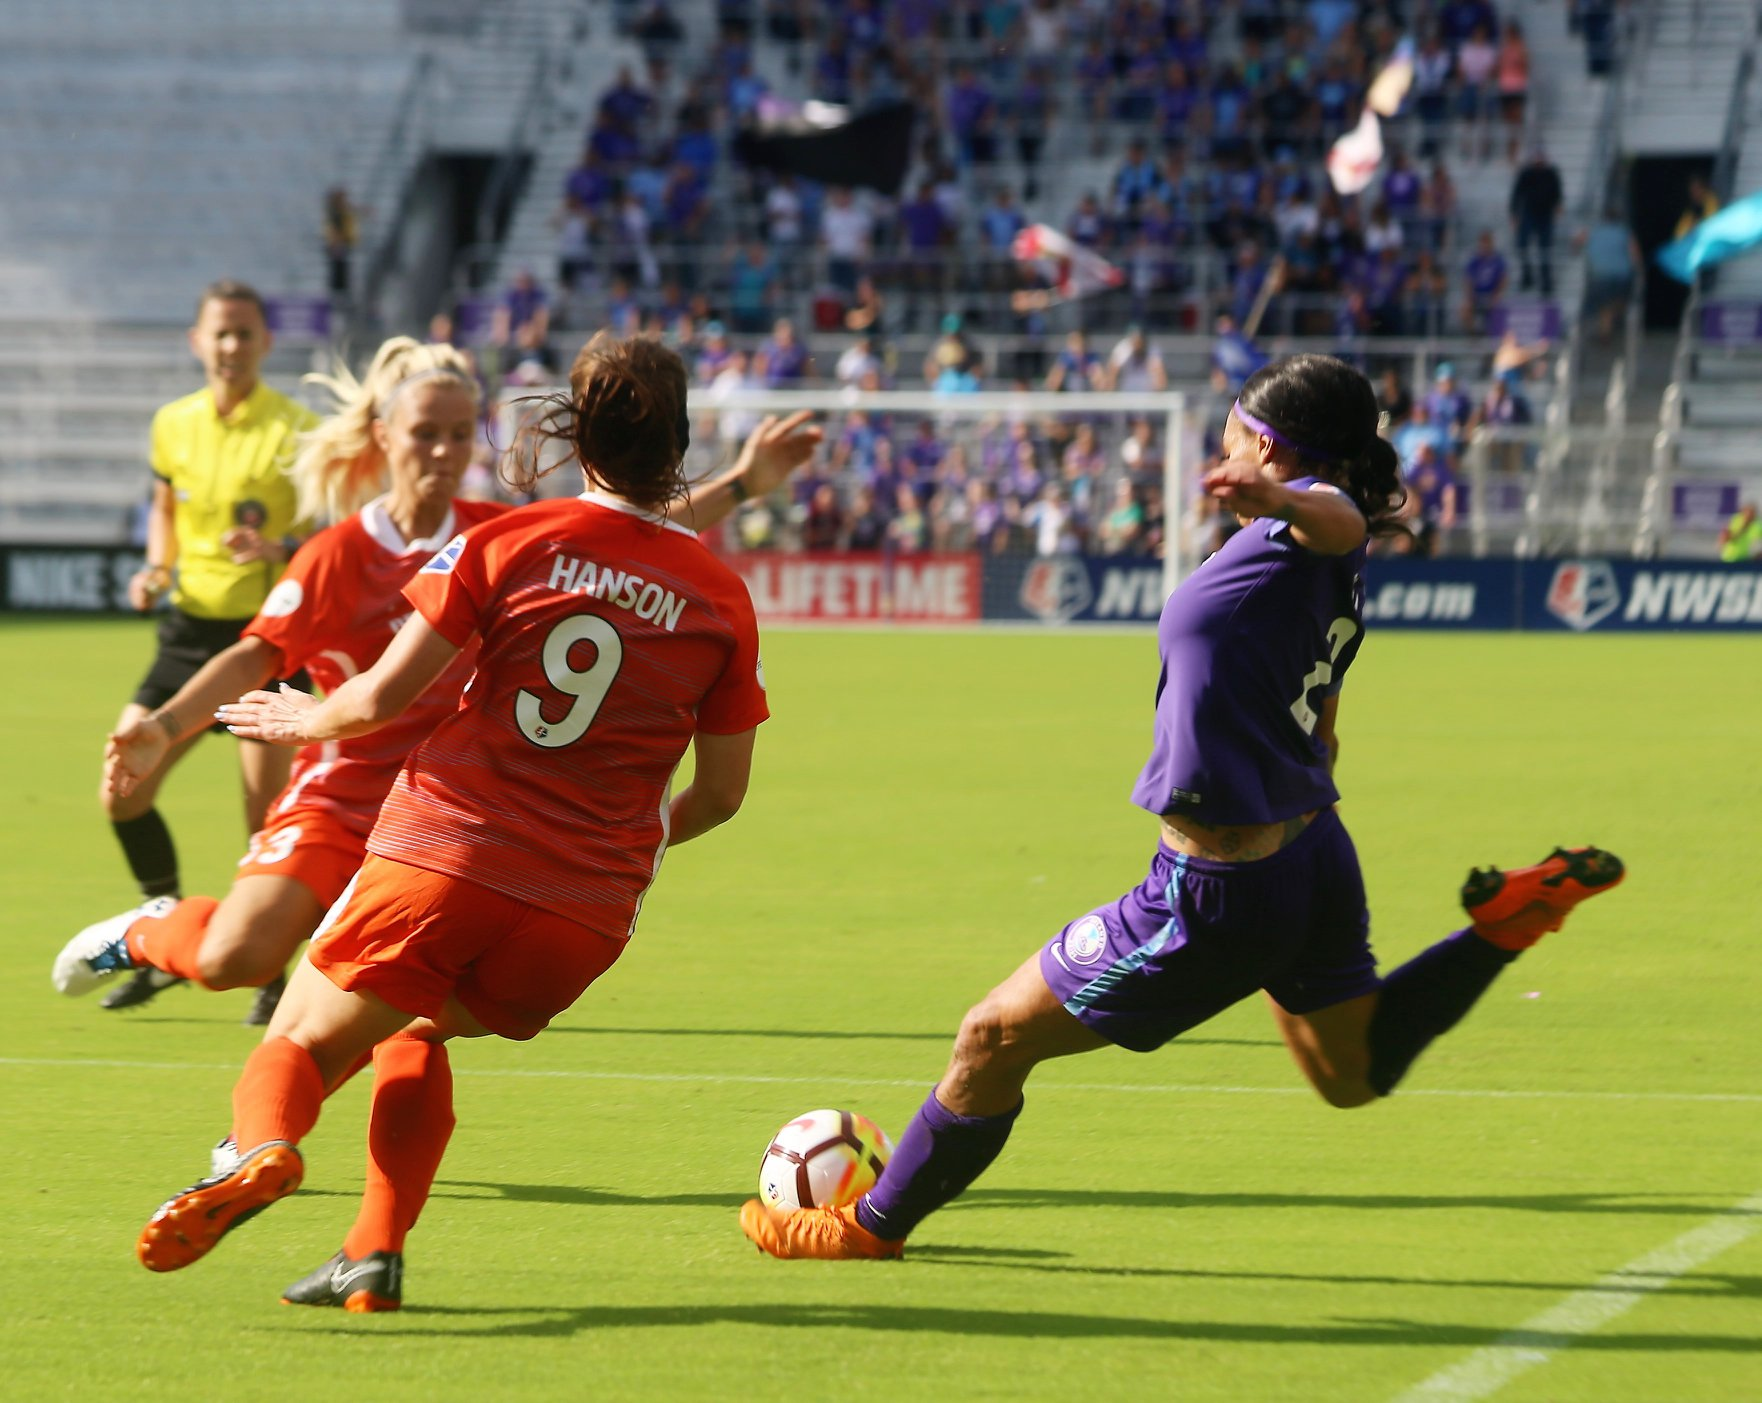 ORLANDO (FNN NEWS) - Sydney Leroux, along with Chioma Ubogagu and the Pride, fought for Sunday shutout. Photo: Willie David / Florida National News.